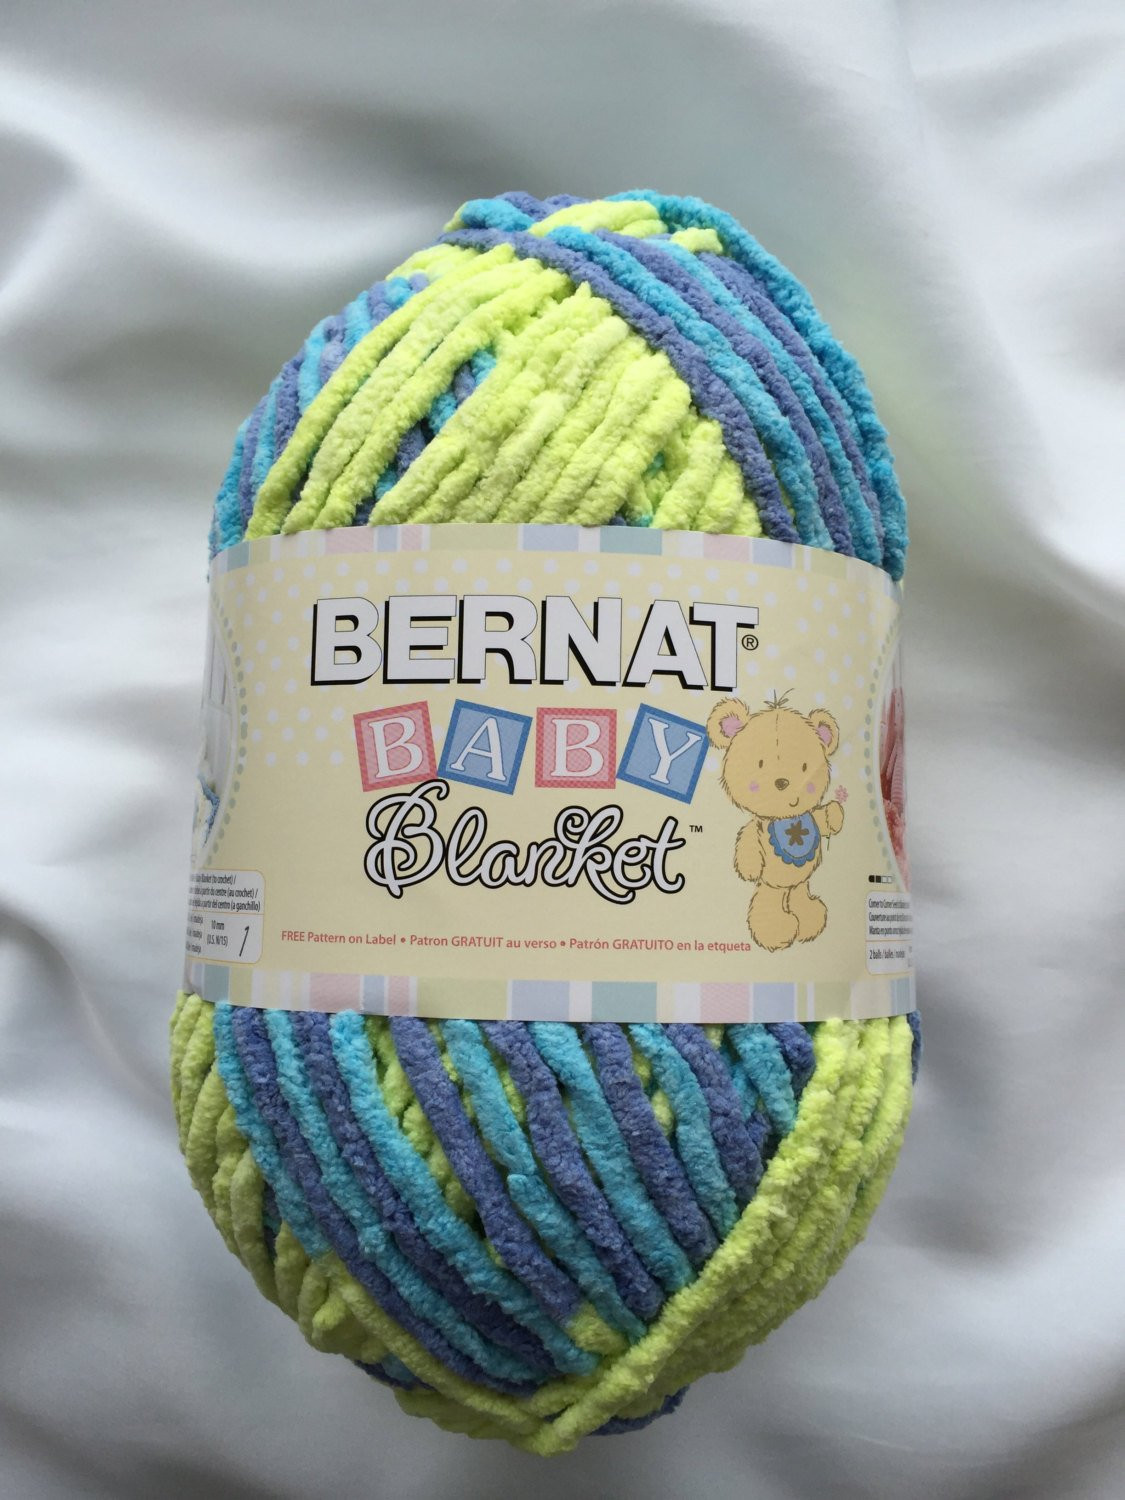 Bernat Blanket Yarn Awesome Handsome Guy Bernat Baby Blanket Yarn 10 5 Oz Of Beautiful 42 Models Bernat Blanket Yarn